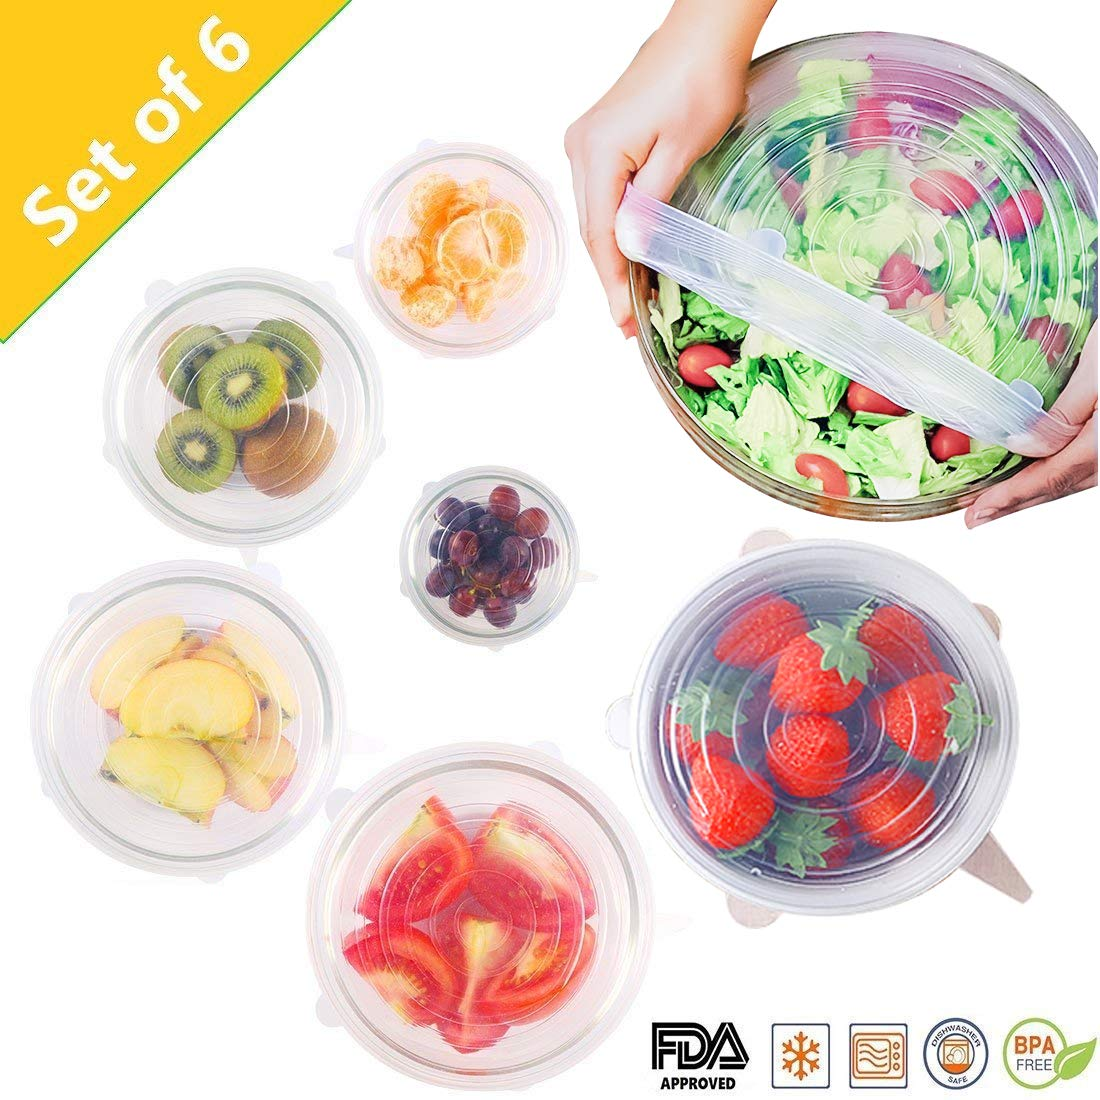 MONBAR Silicone Stretch Lids, 6-Pack of Various Sizes Silicone Bowl Covers Reusable Durable and Expandable for Container,Bowl,Can,Cup and Dishwasher,Freezer,Microwave Safe,Transparent